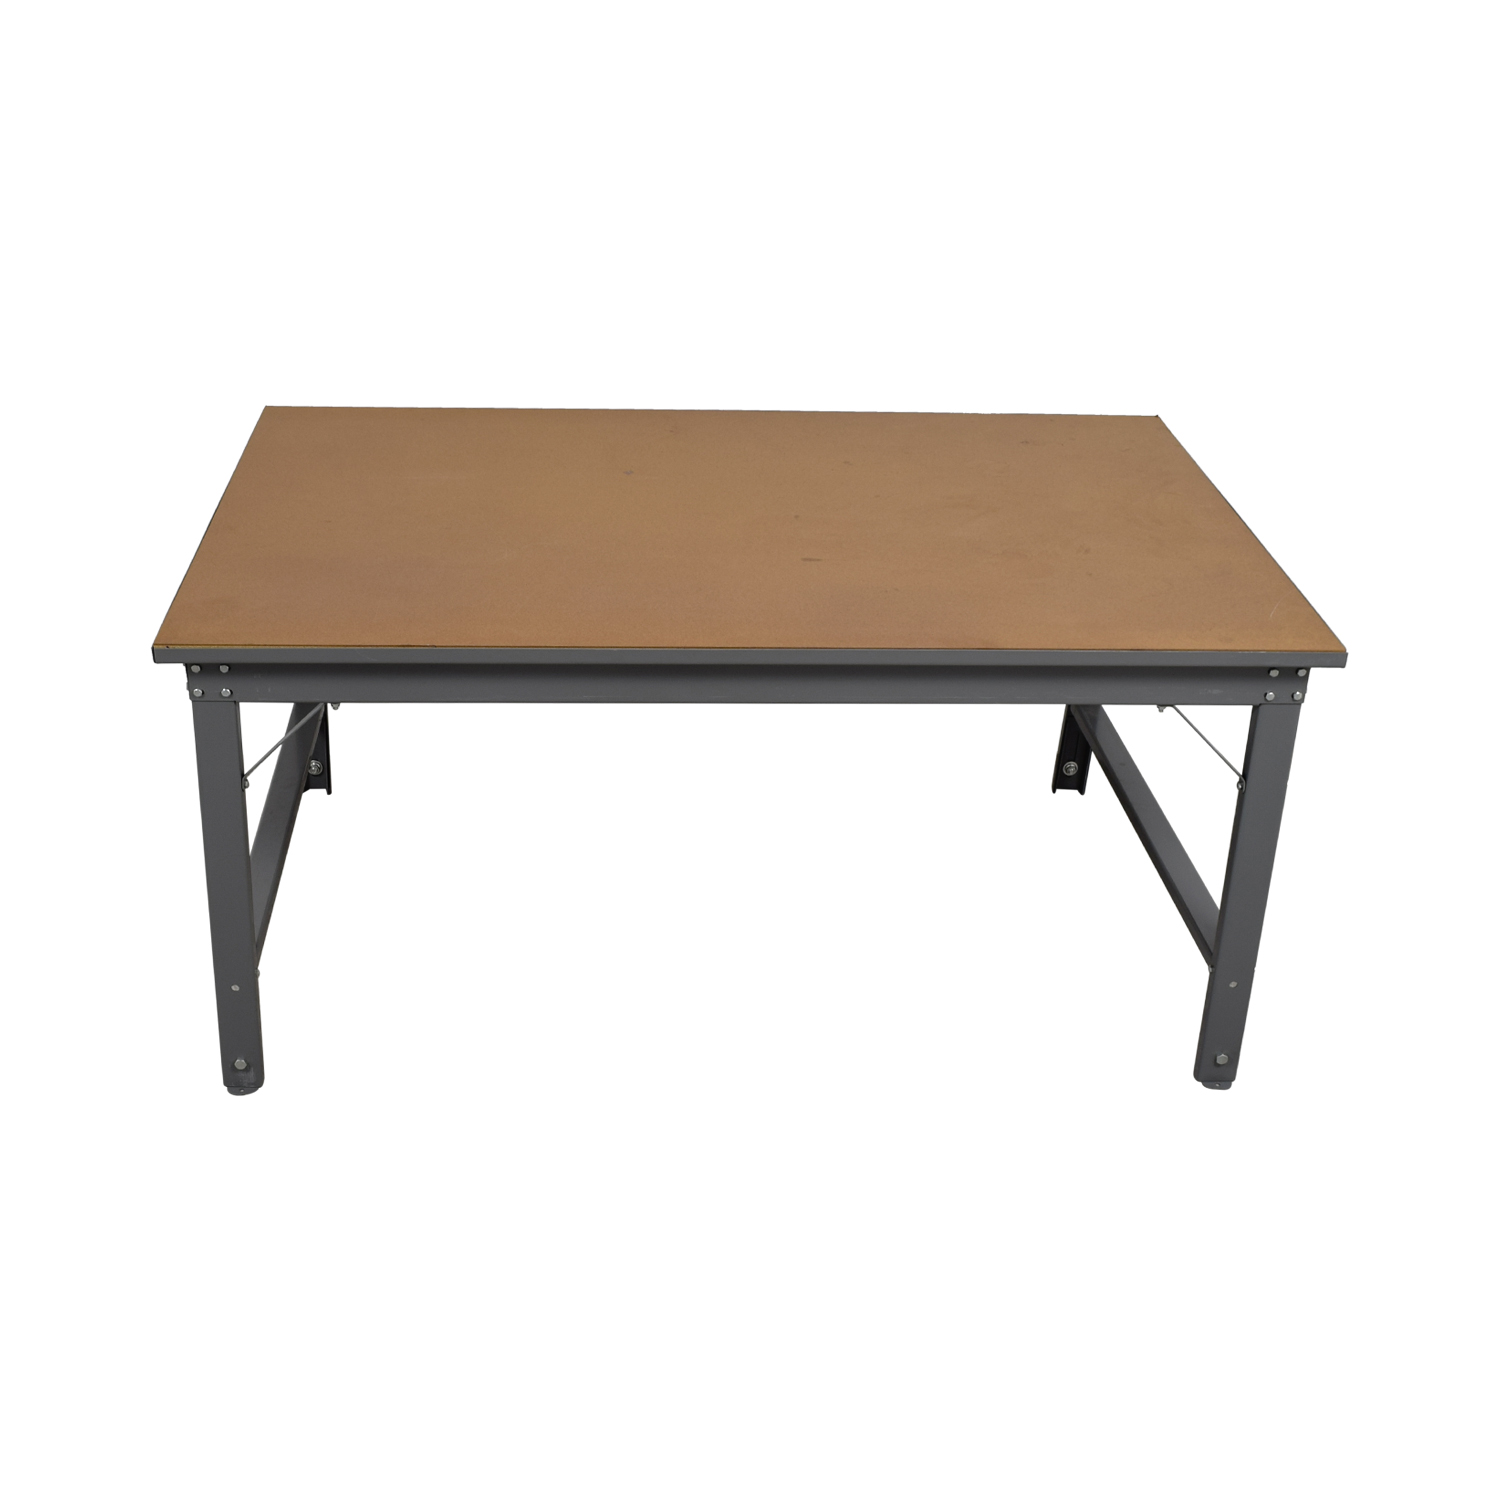 Southstar Supply Southstar Supply Industrial Tan Workshop Table for sale